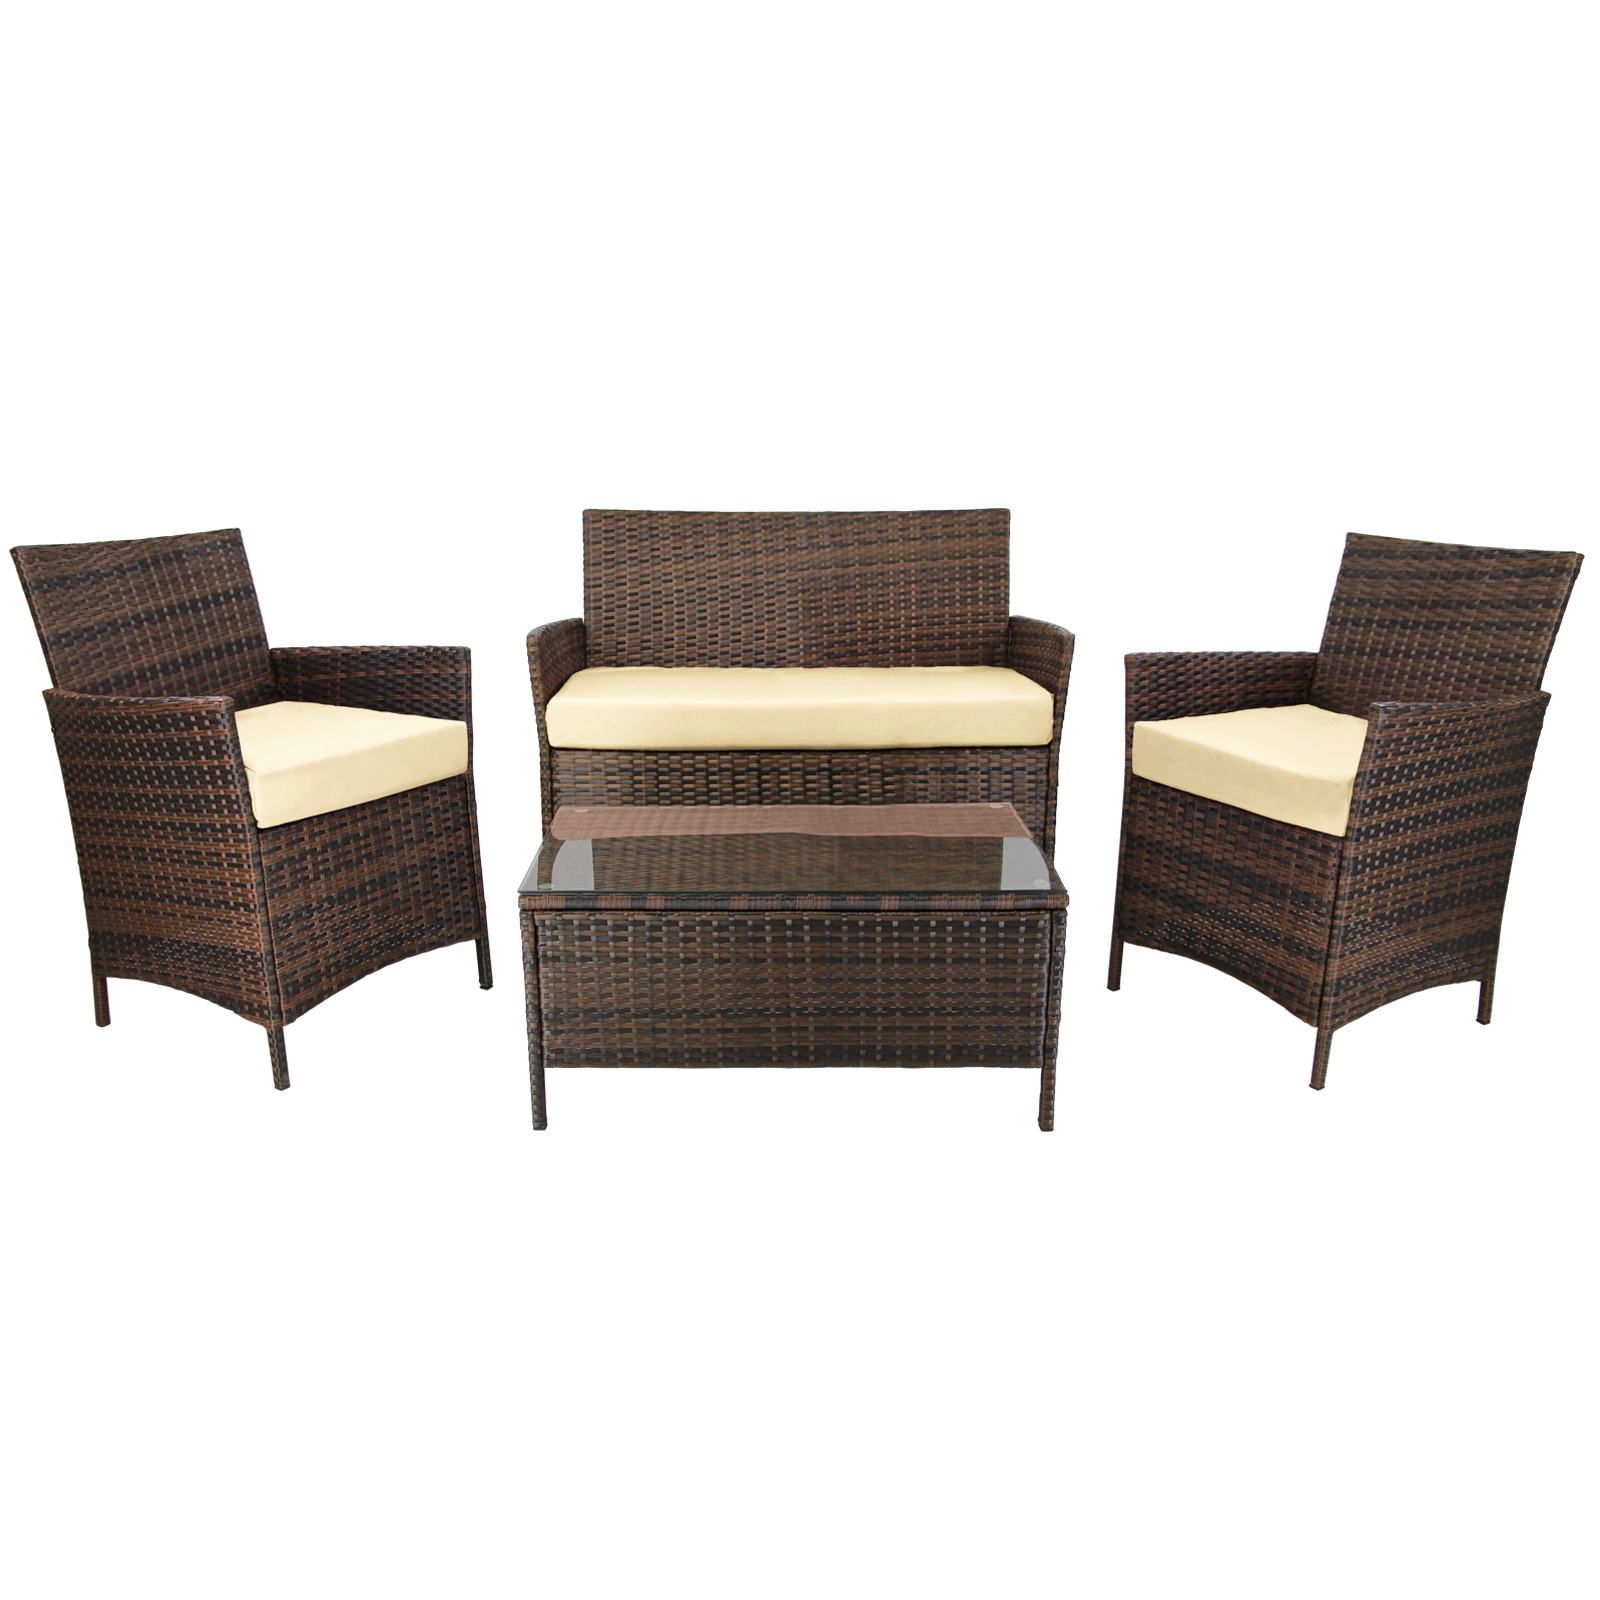 poly rattan sitzgruppe 7 teilig lounge kuba sitzgarnitur. Black Bedroom Furniture Sets. Home Design Ideas